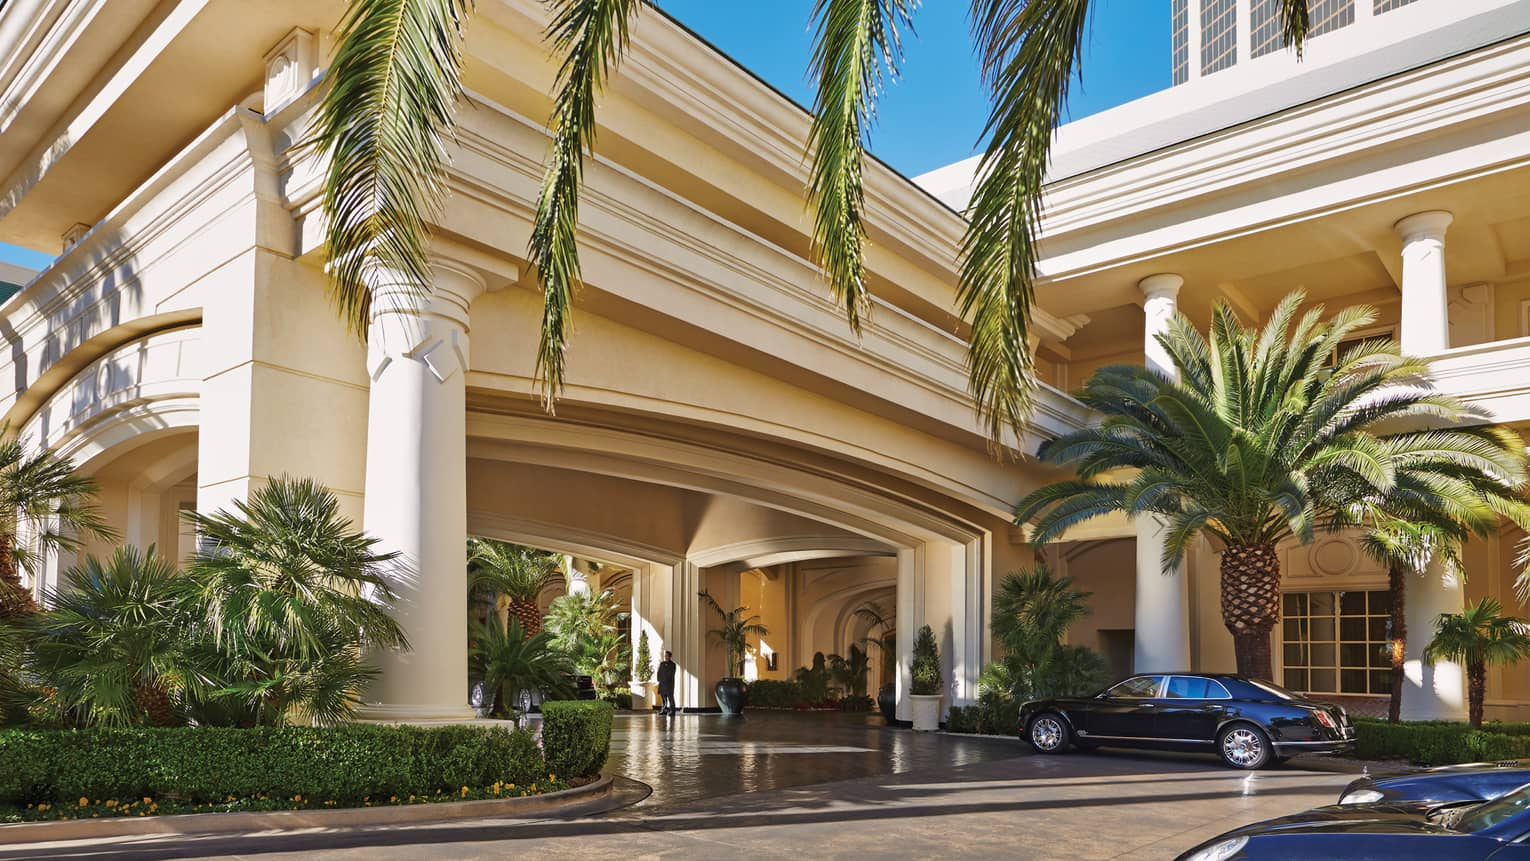 Luxury car parked by palm tree, large white pillars and front hotel entrance